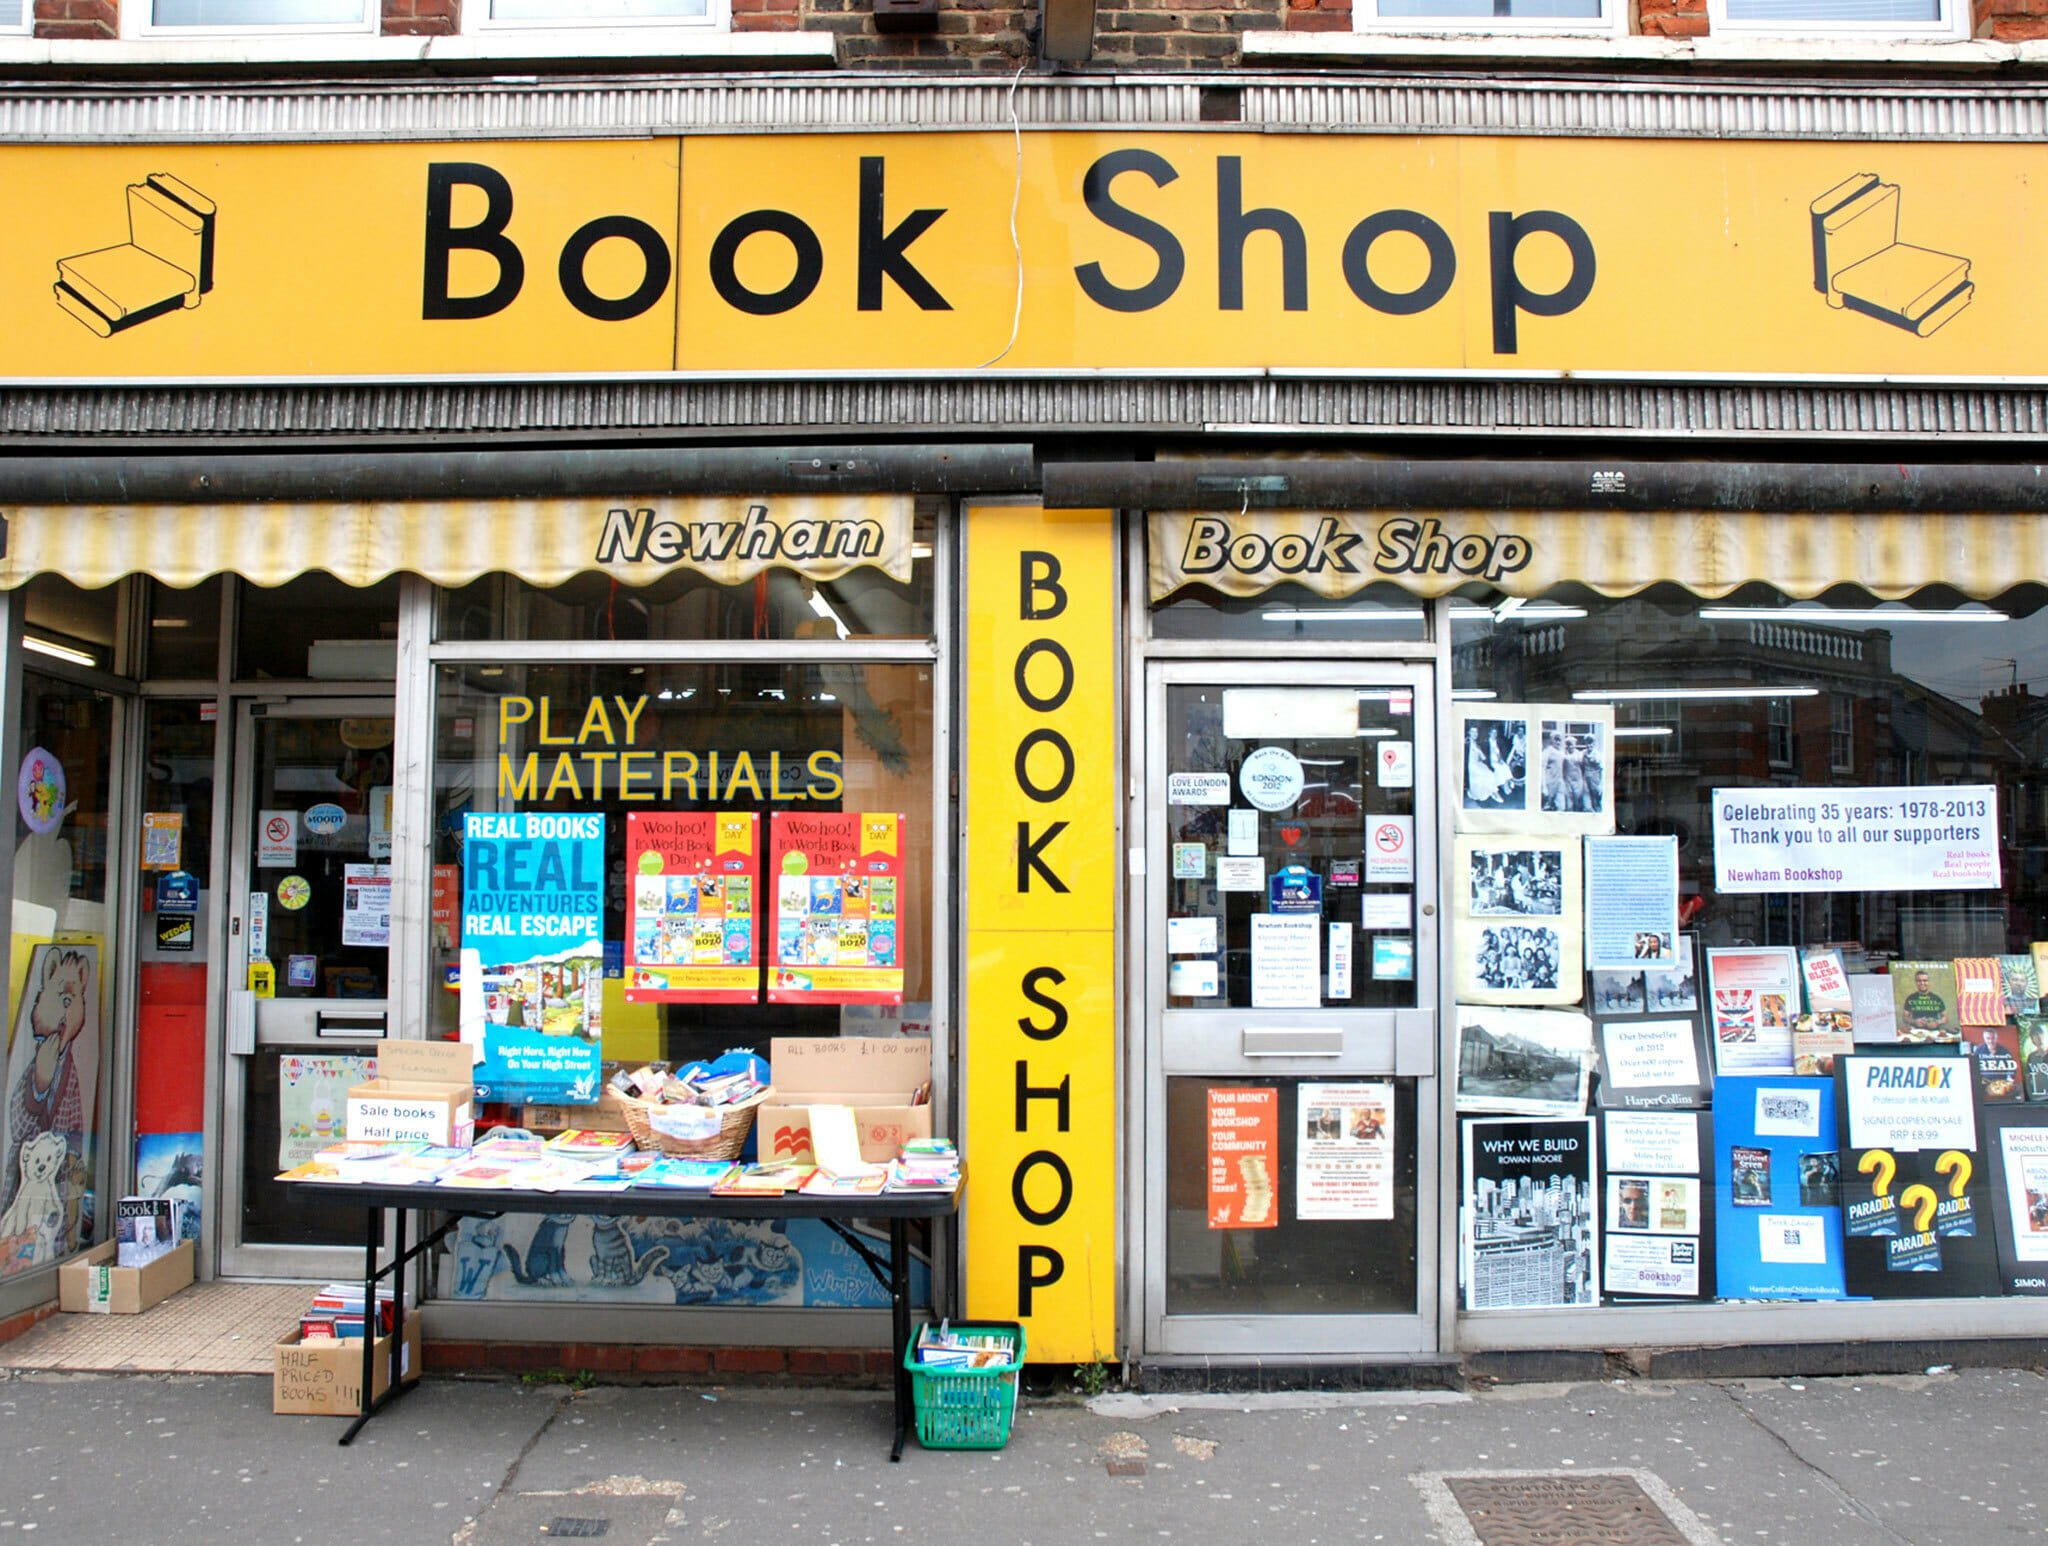 Newham Book Shop delivery